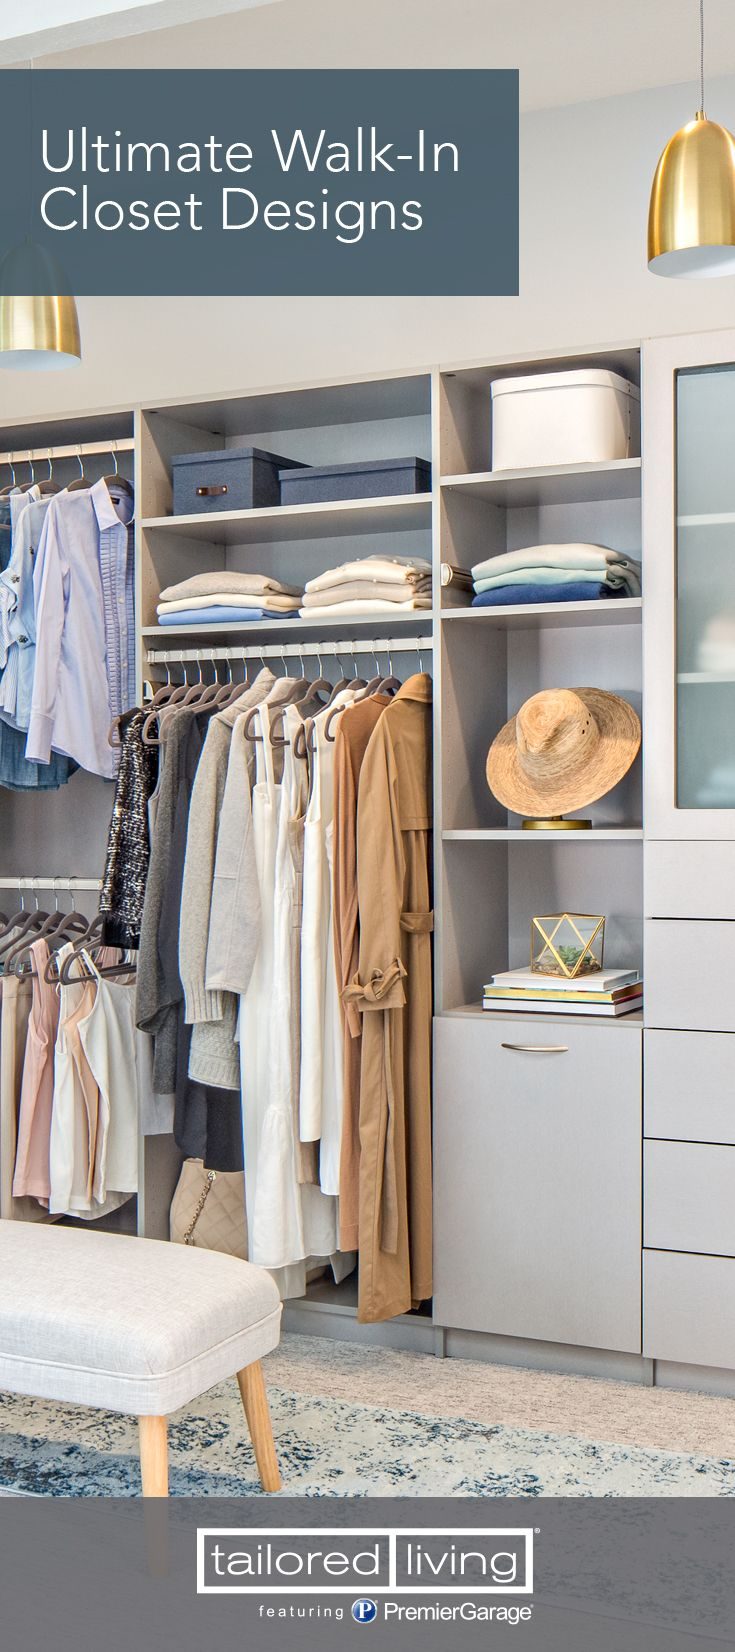 Maximize Your Storage With Stylish And Affordable Custom Closets. Request A  Free In Home Consultation Today And Ask About Our Special Savings.